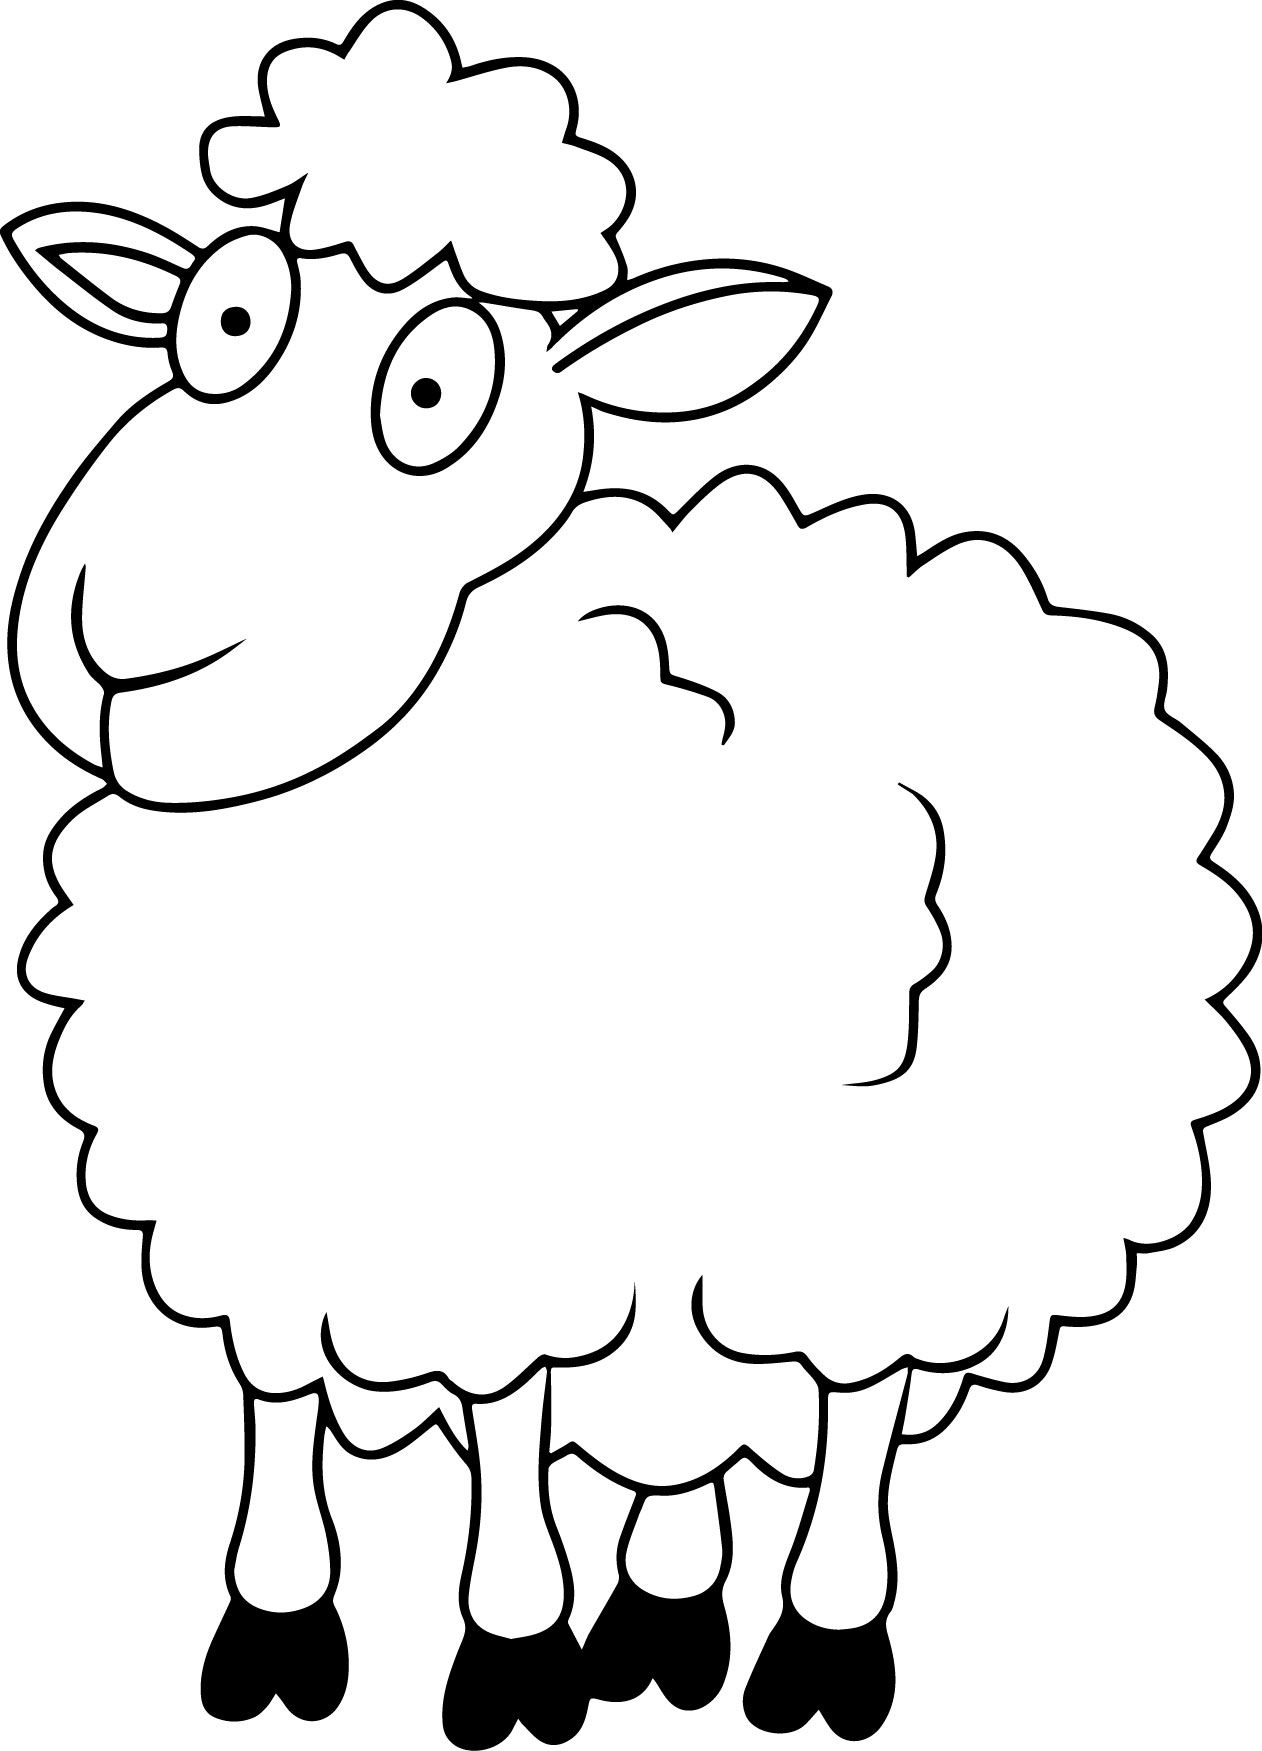 outline for coloring baby chick outline coloring page kids play color coloring for outline